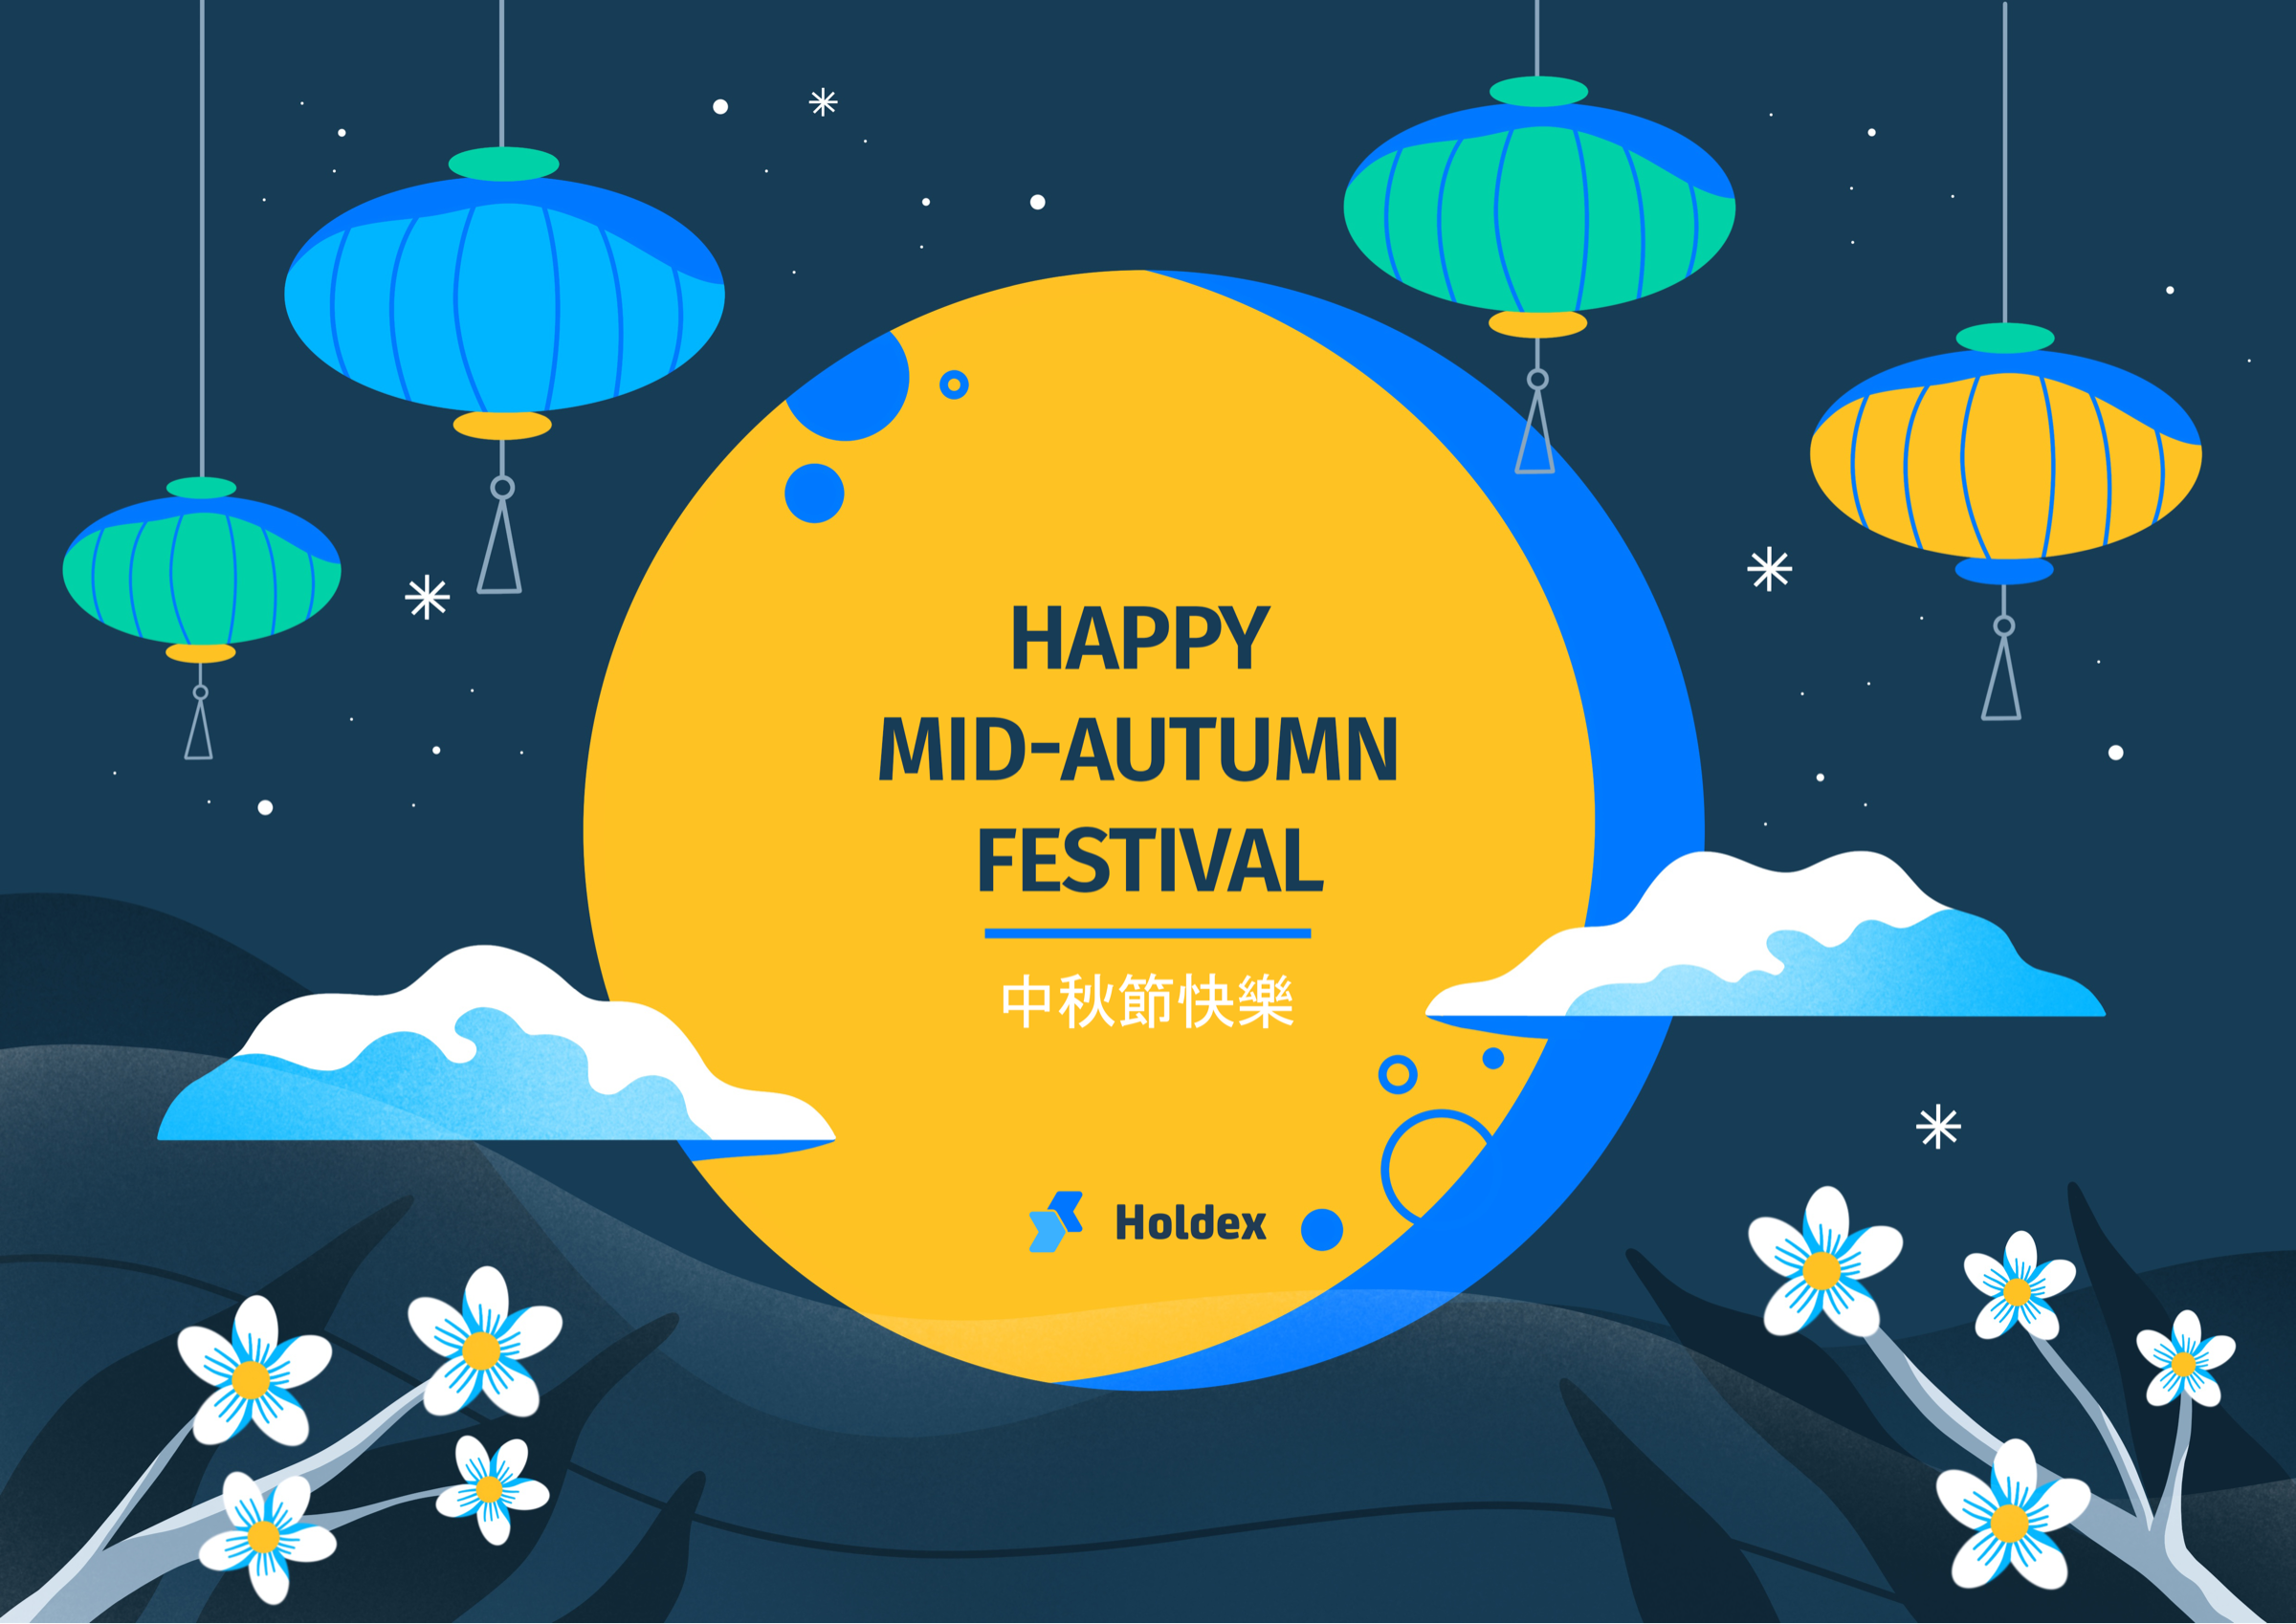 Happy Mid-Autumn Festival wish card